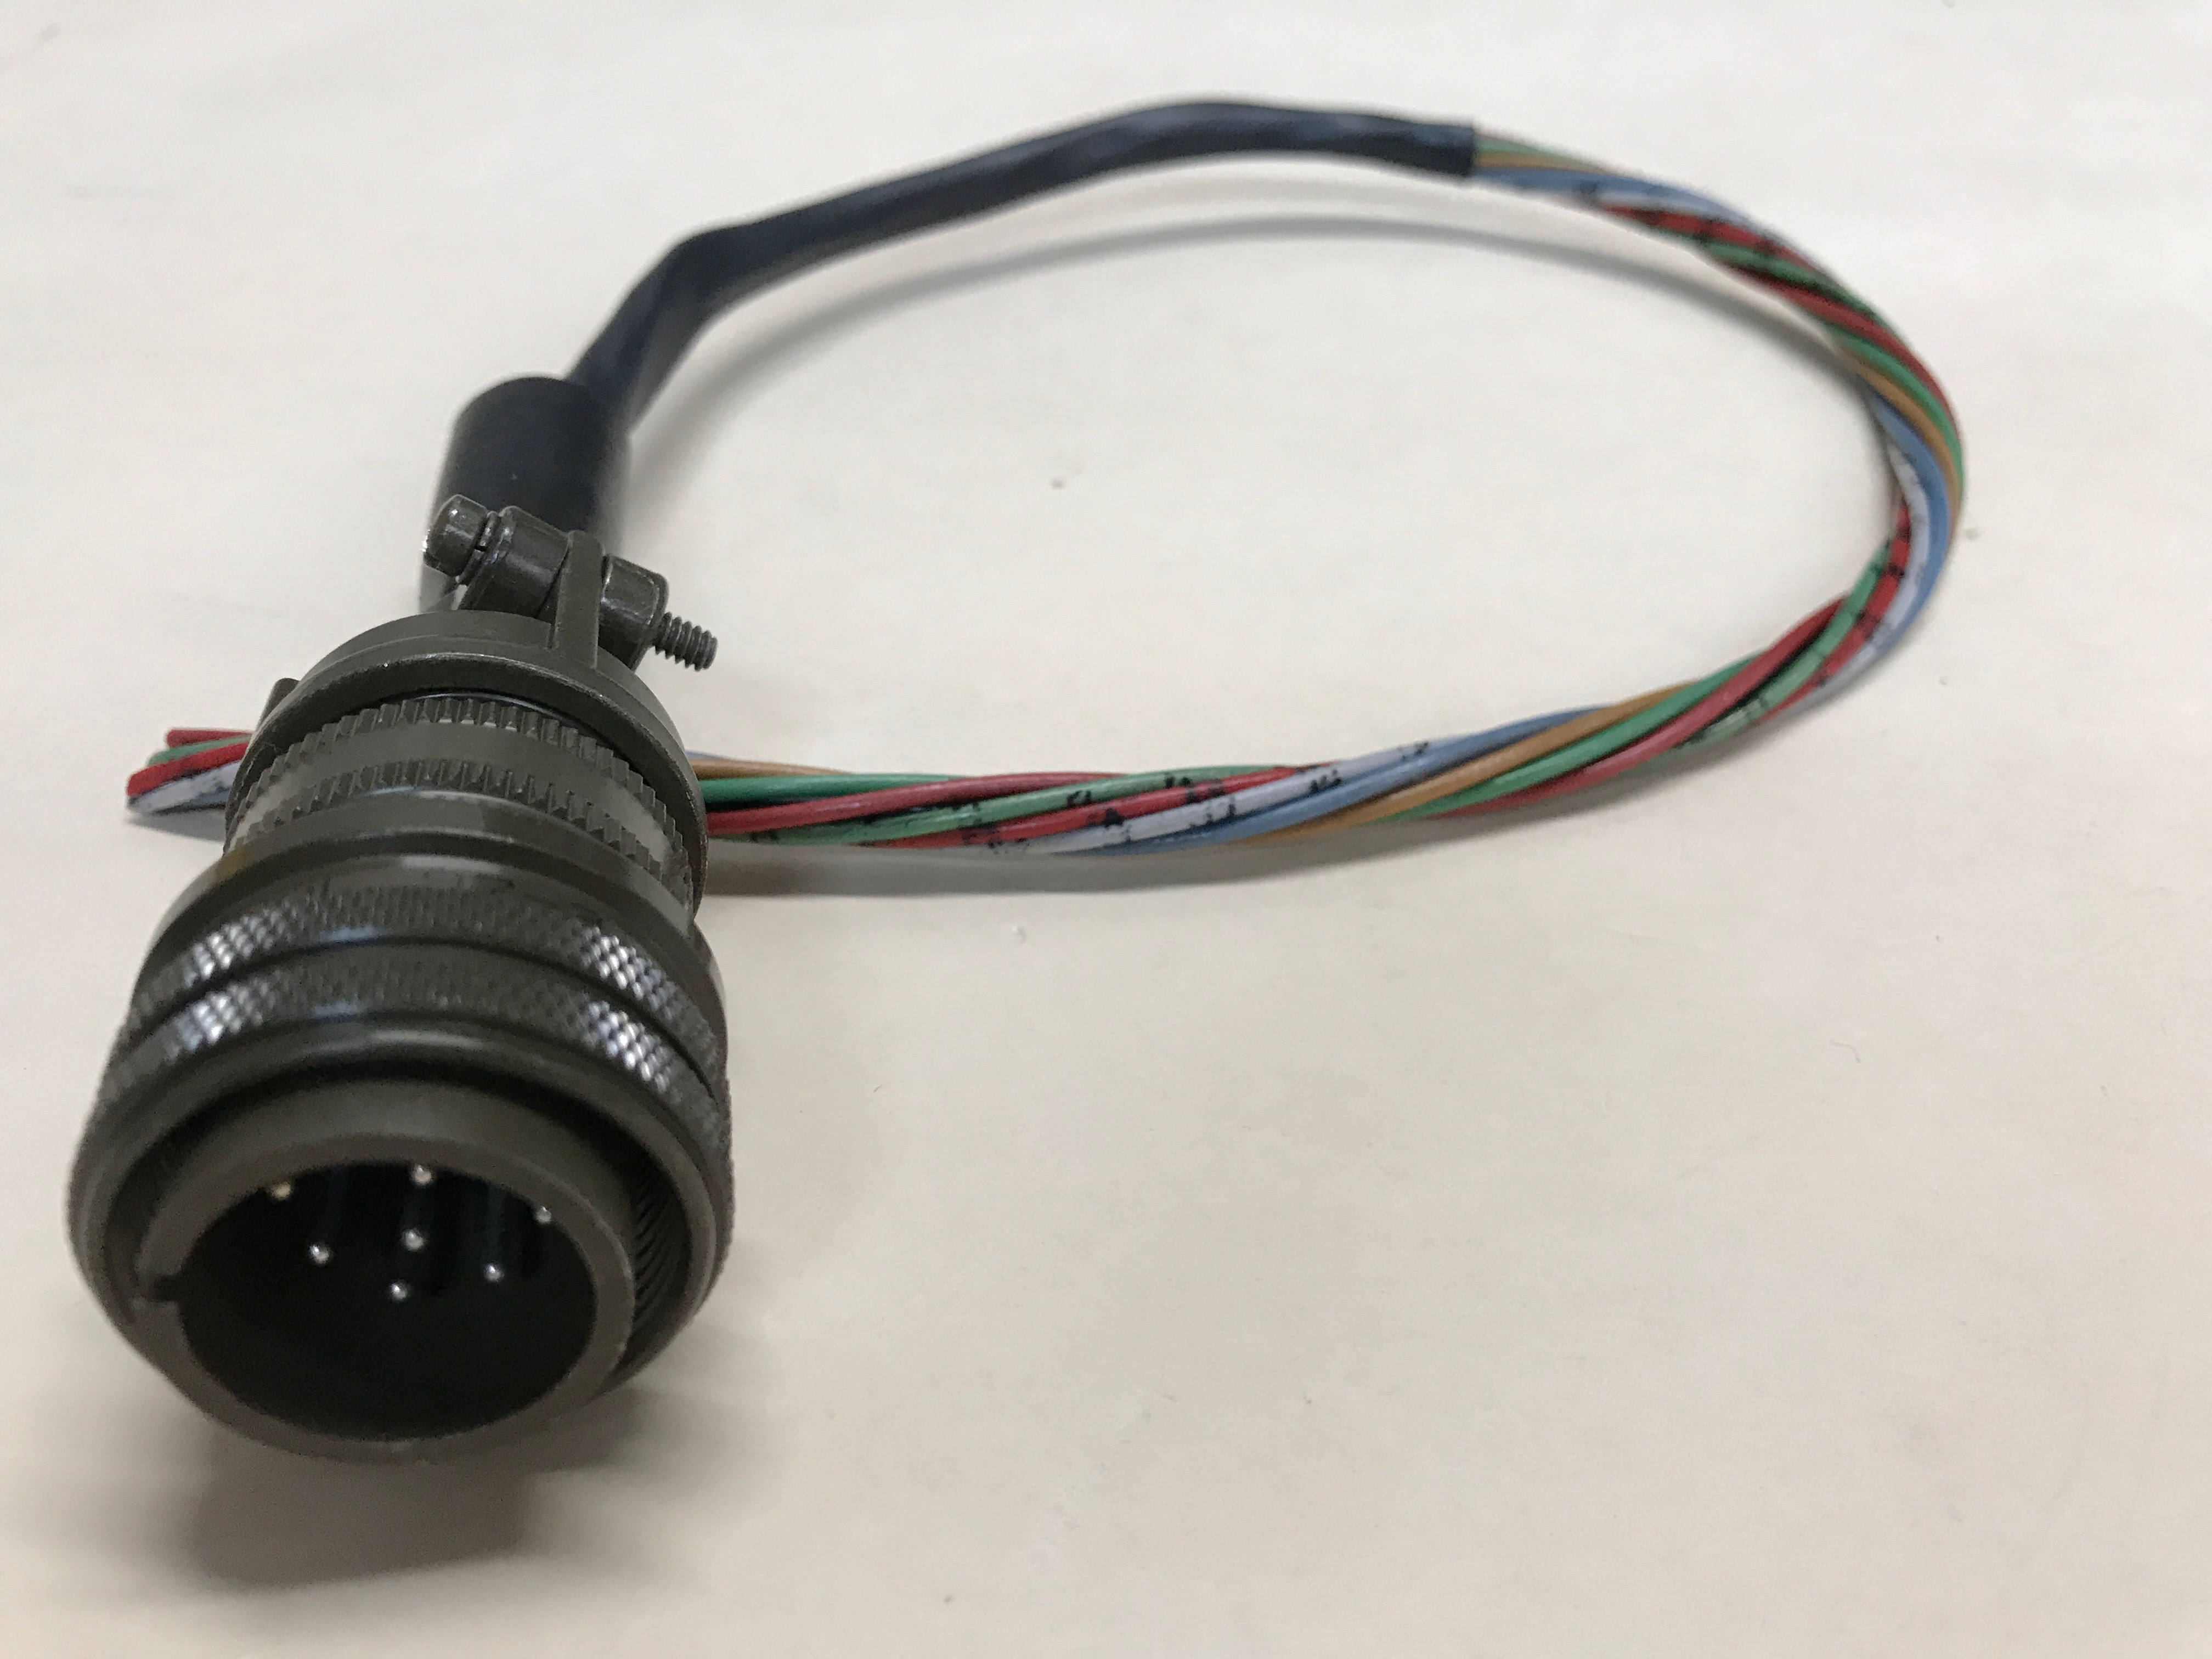 Pigtail, Cable Assembly Cn2 pCO2